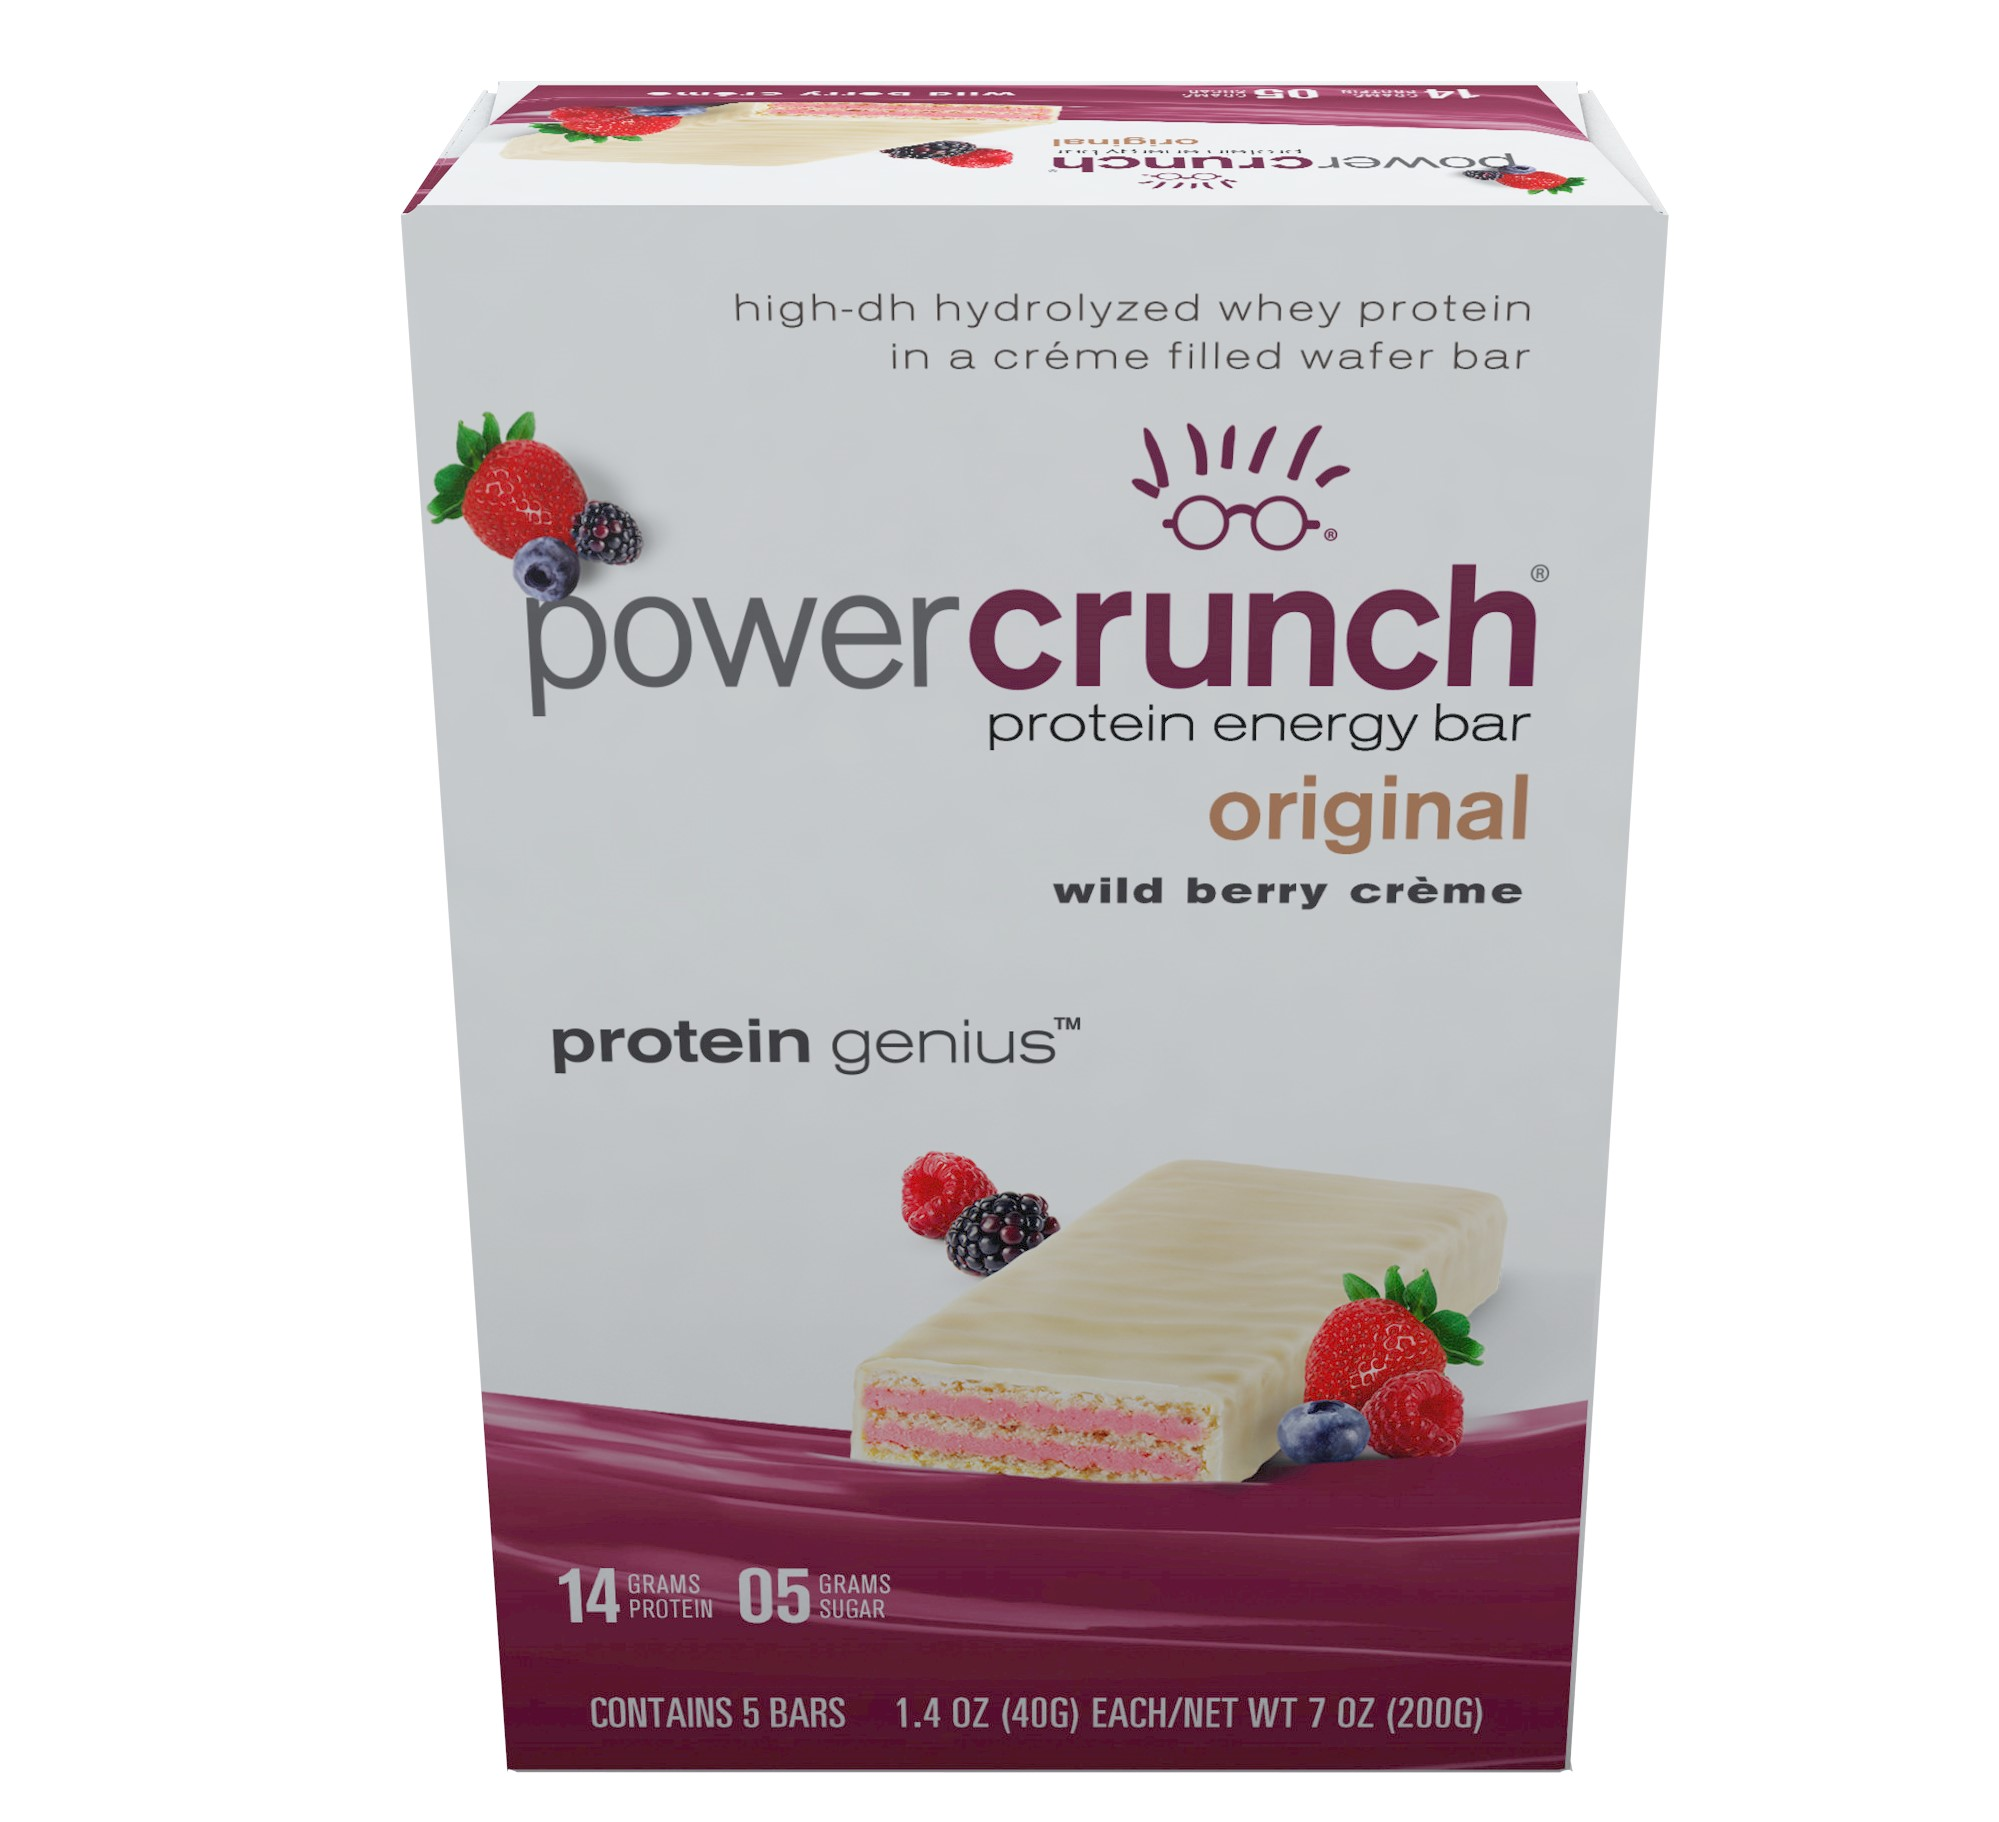 Power Crunch Protein Energy Bar, Wild Berry Cream, 14g Protein, 5 Ct